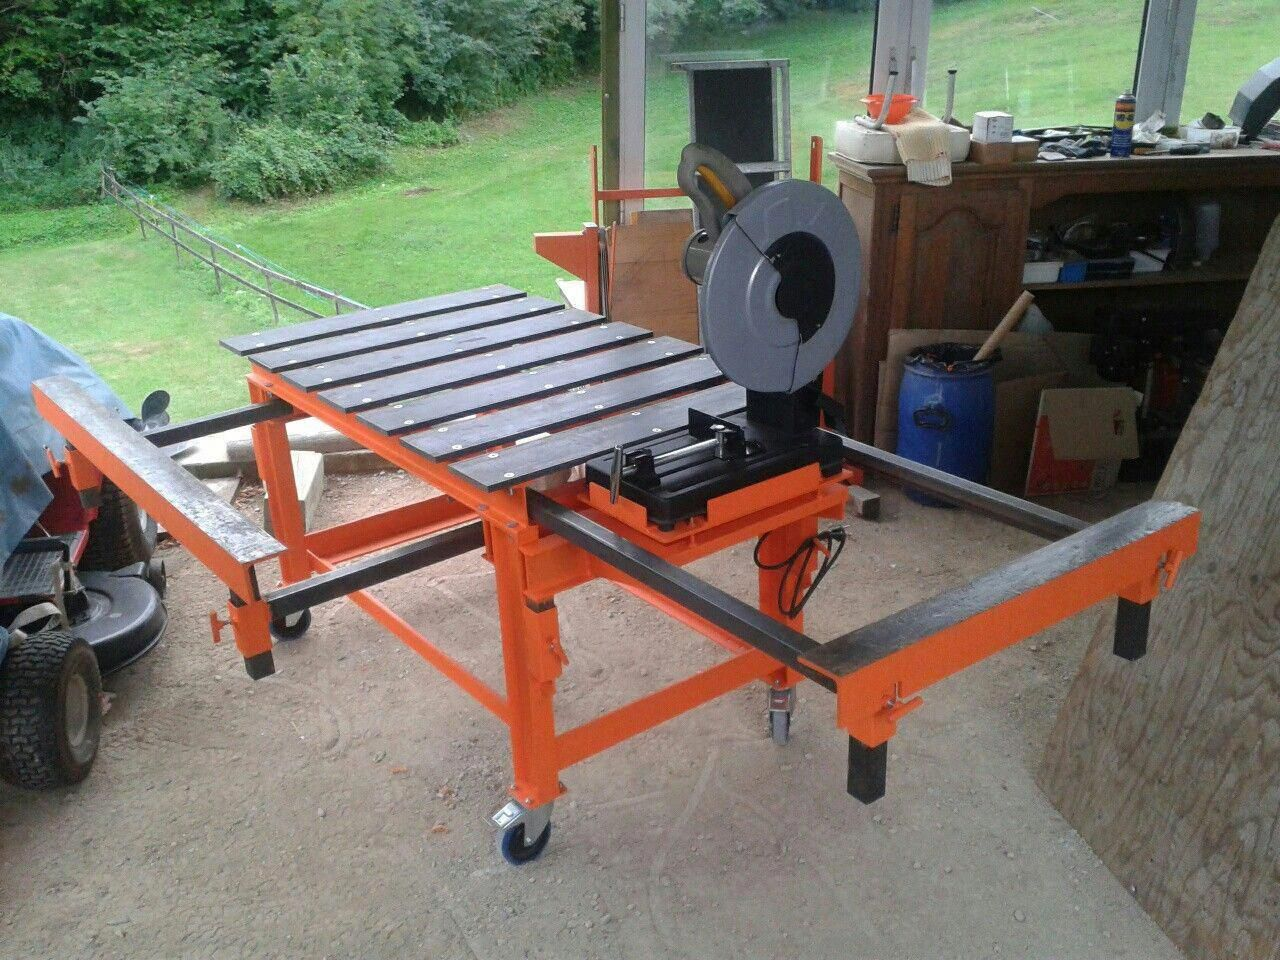 Welding Projects Metal Welding Welding Table Welding Projects Welding